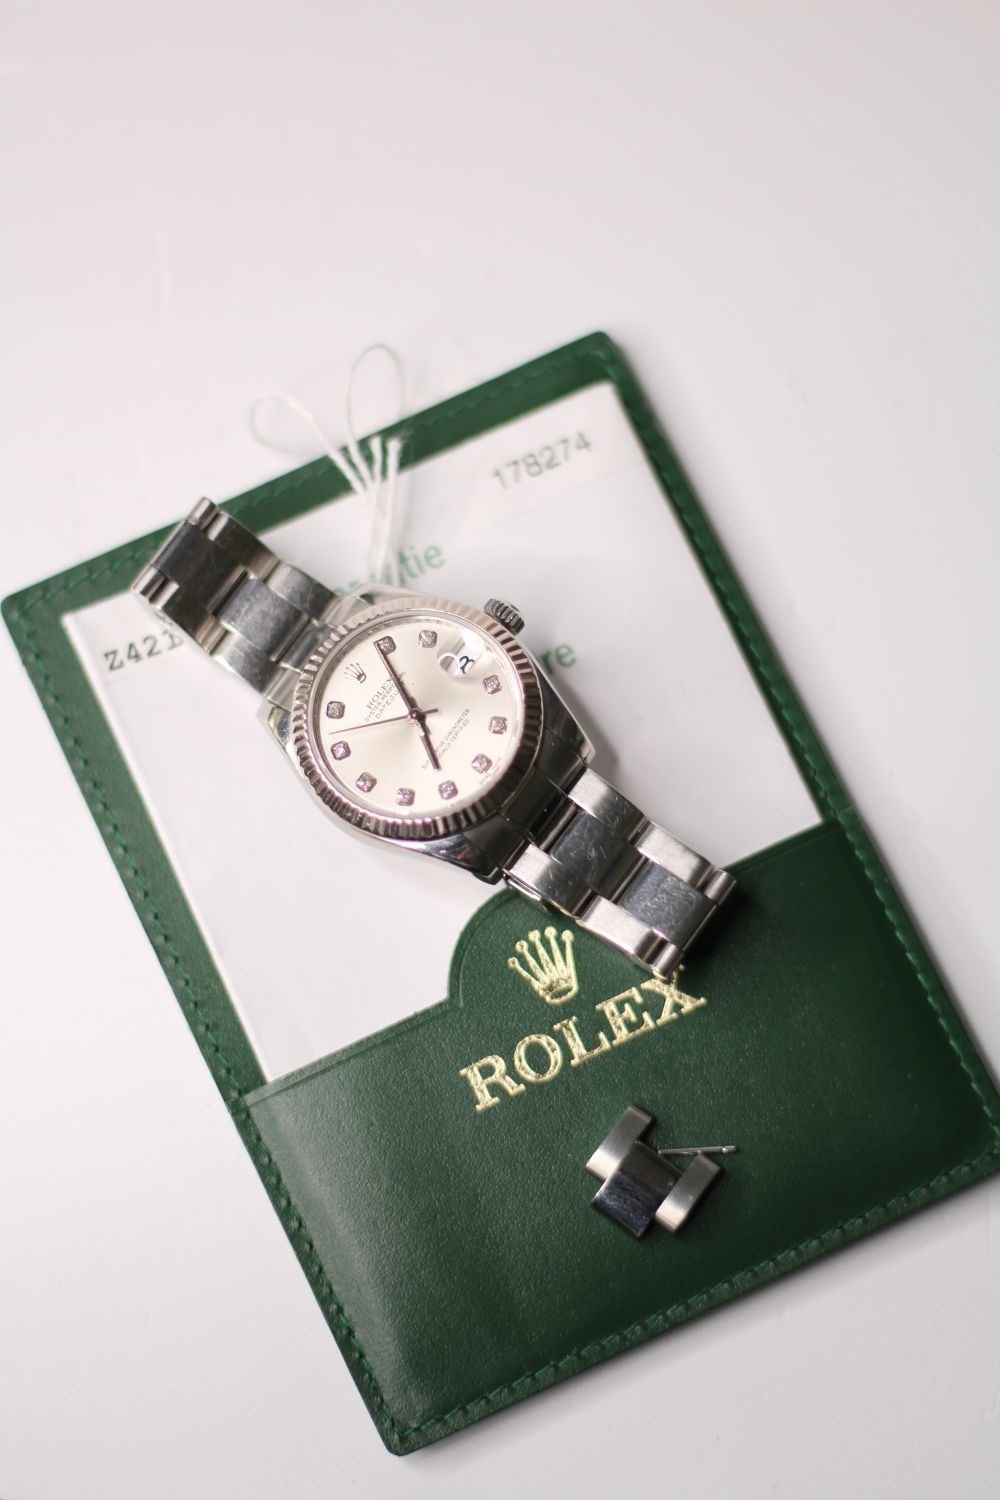 ROLEX DIAMOND DIAL DATEJUST WRISTWATCH REF 178274 W/PAPERS, circular silver dial with diamond hour - Image 2 of 5